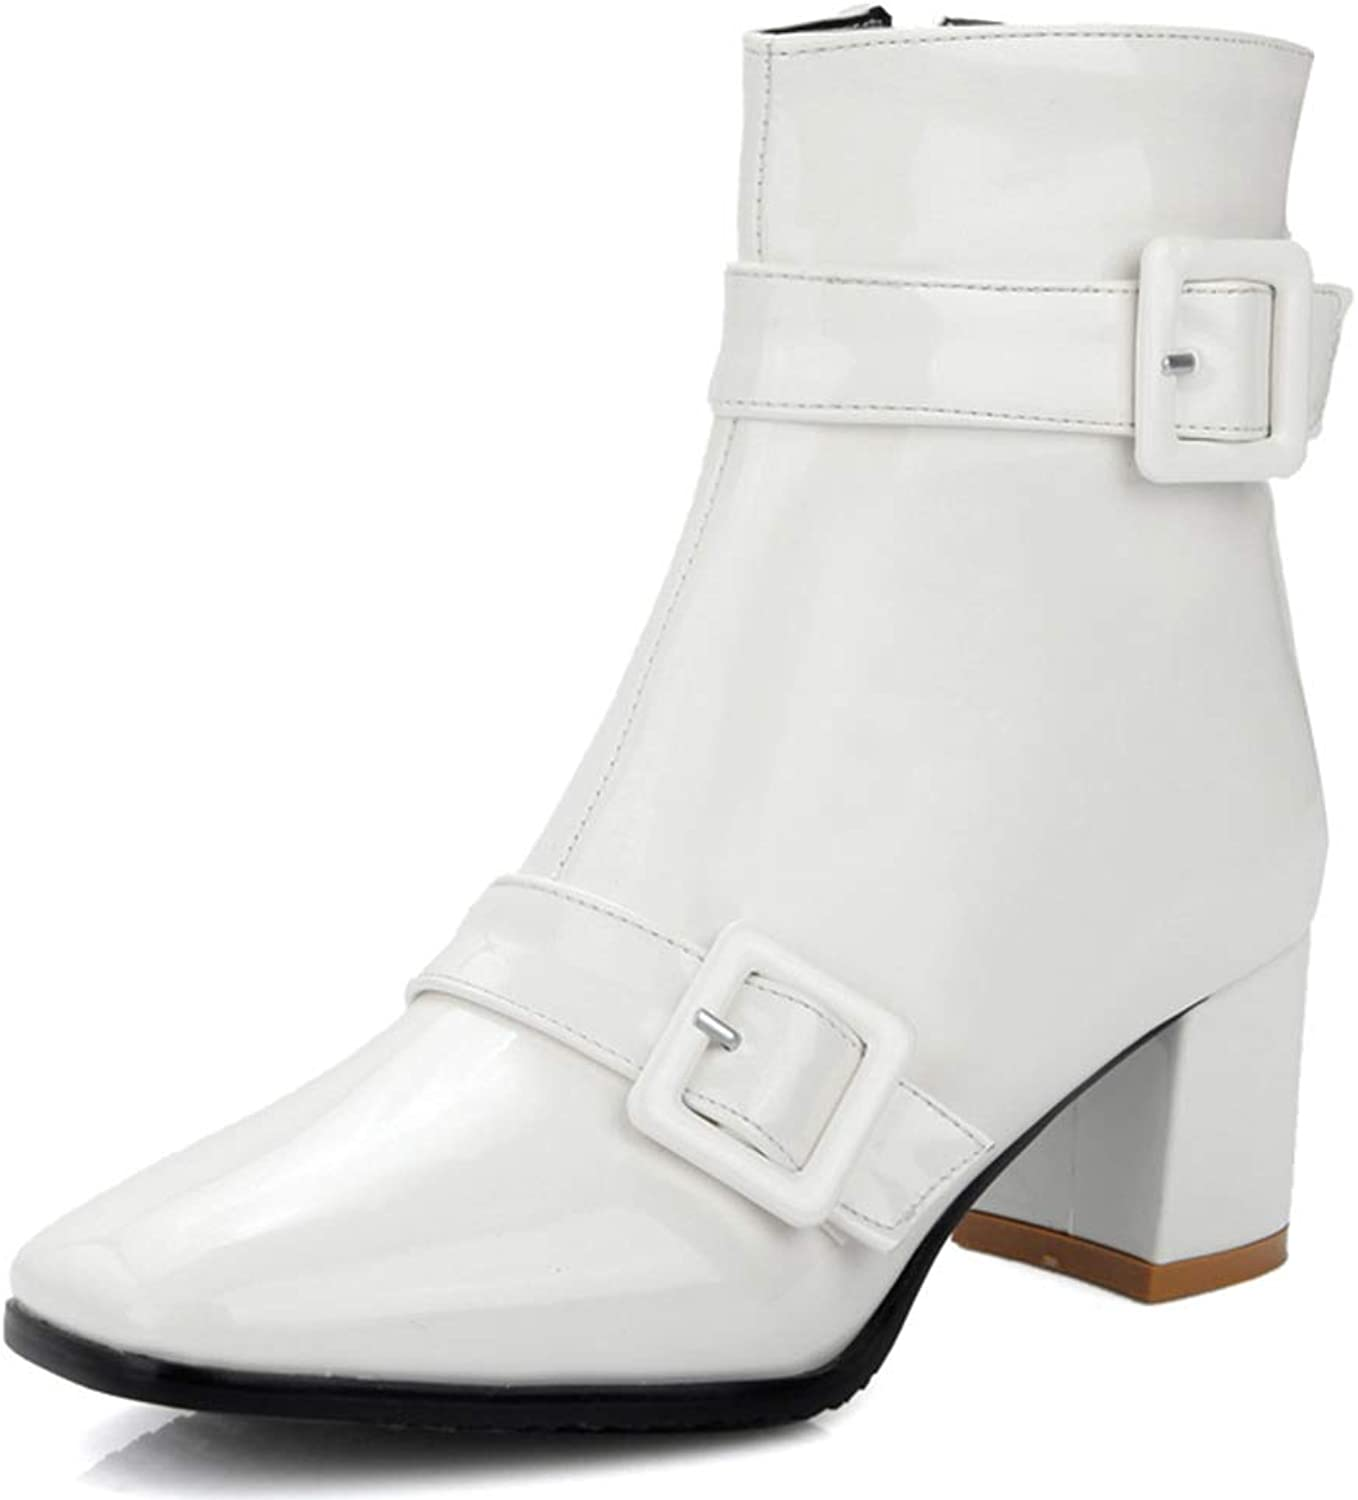 KingRover Women's European Style Buckle Chunky Heel Classic Ankle Boots